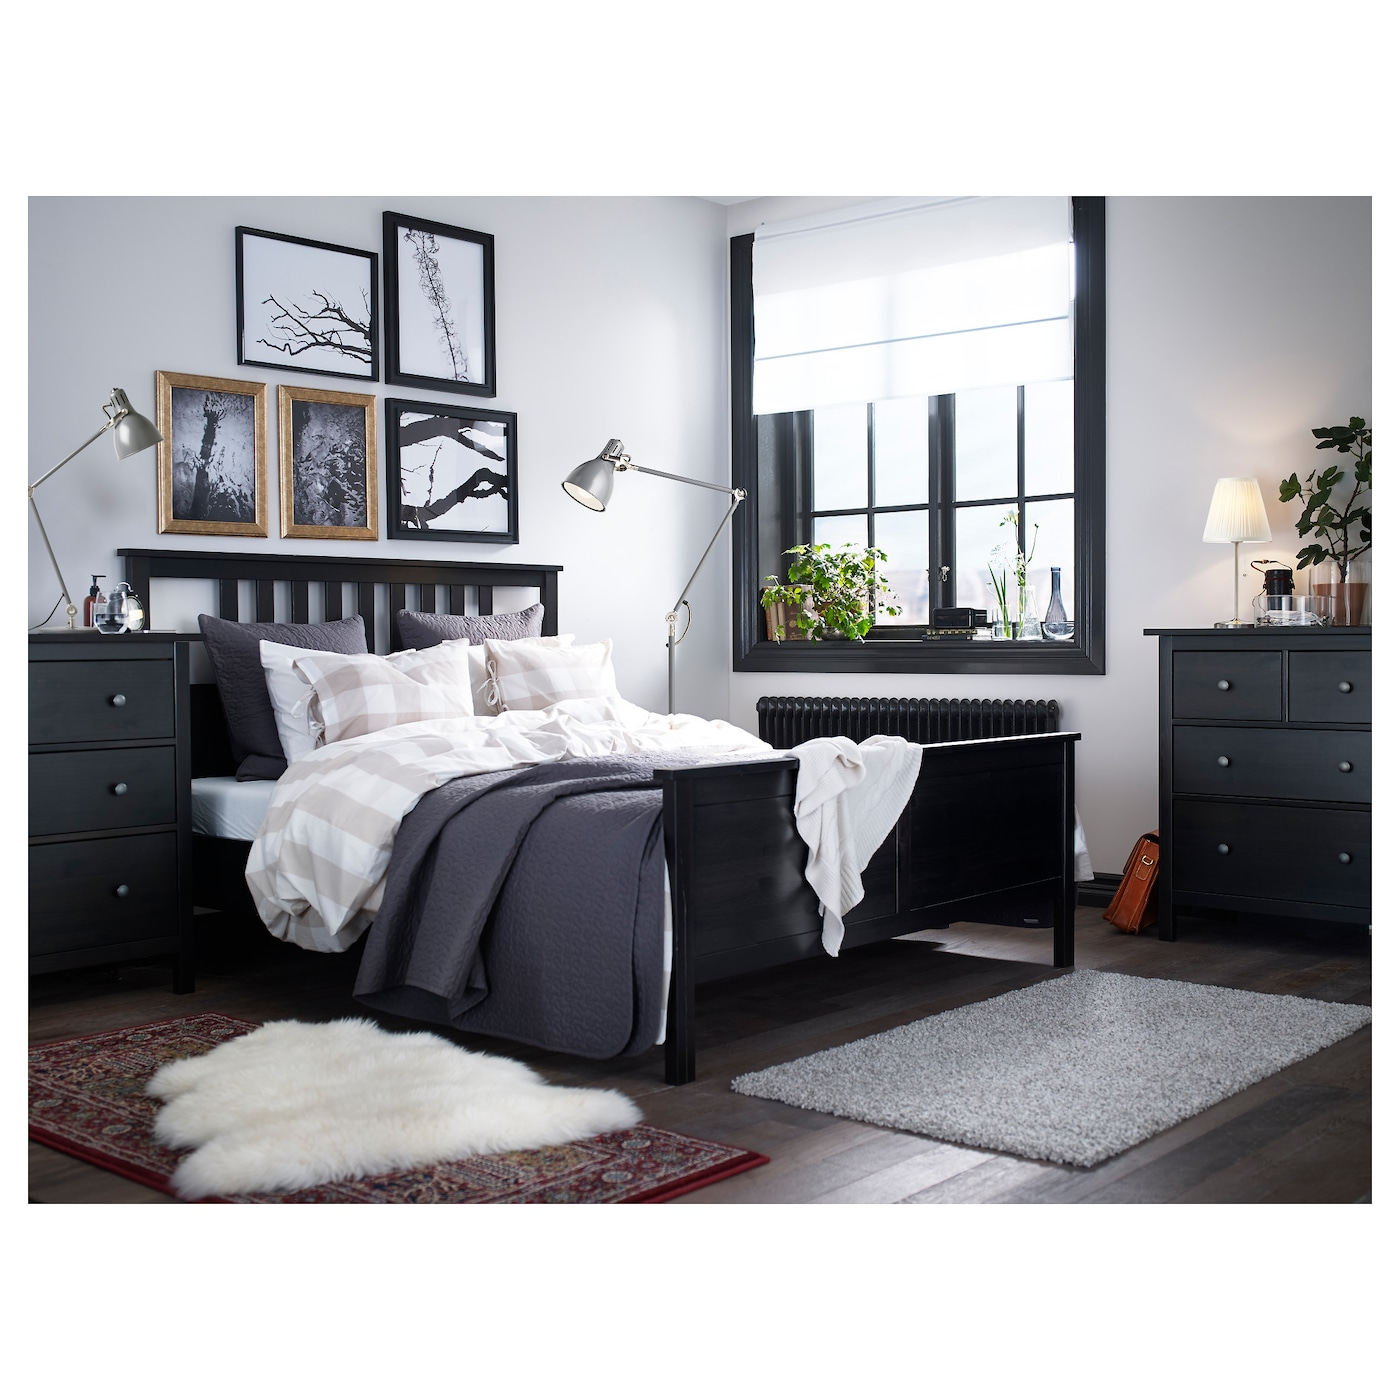 hemnes cadre de lit brun noir 160x200 cm ikea. Black Bedroom Furniture Sets. Home Design Ideas